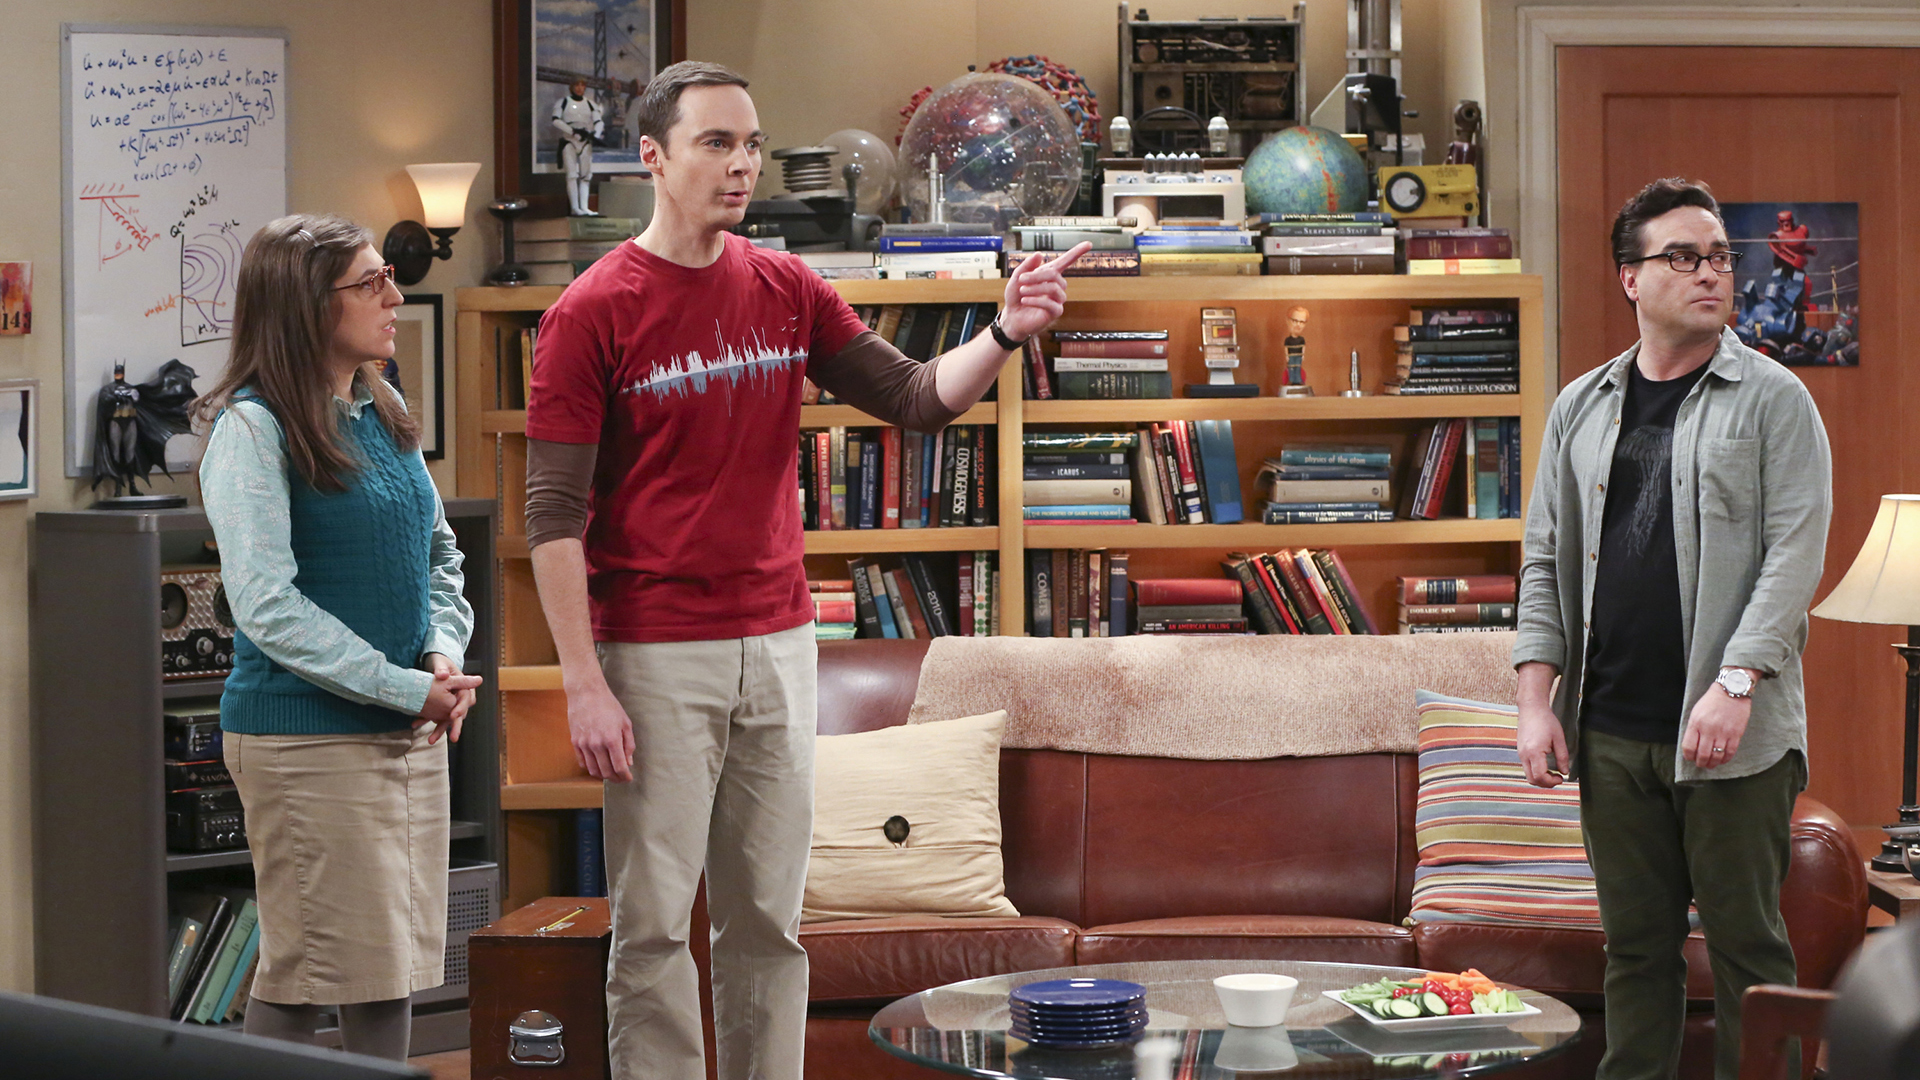 Sheldon hassles Leonard about his Christmas decorations being up too long.